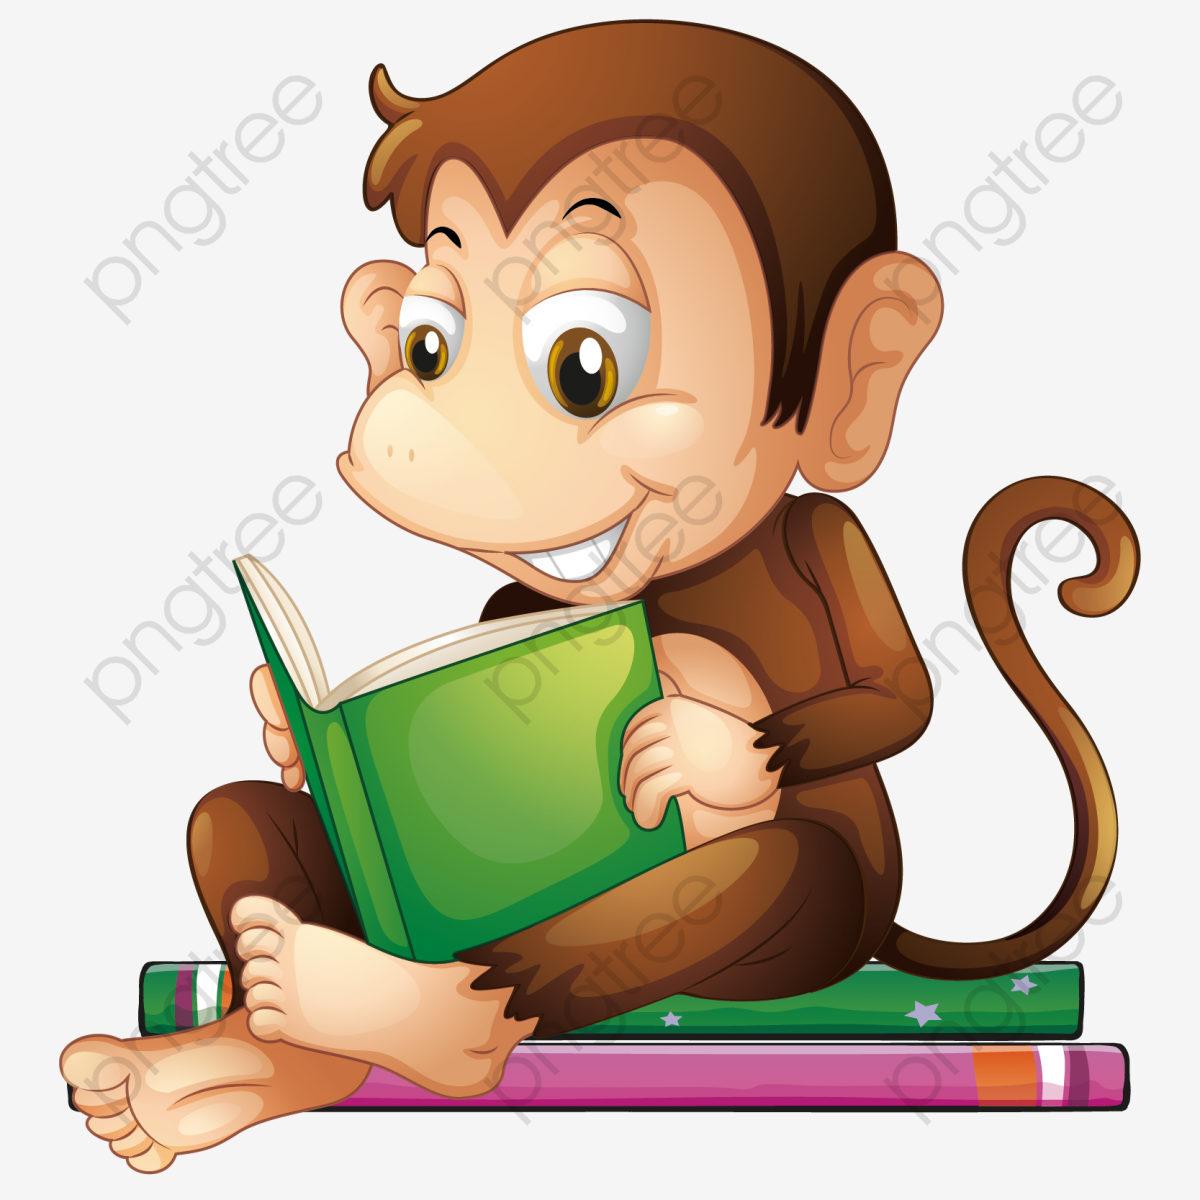 Vector Reading Monkeys Monkey Clipart Vector Read A Book Png Transparent Clipart Image And Psd File For Free Download Monkey Illustration Cute Monkey Kids Reading Books